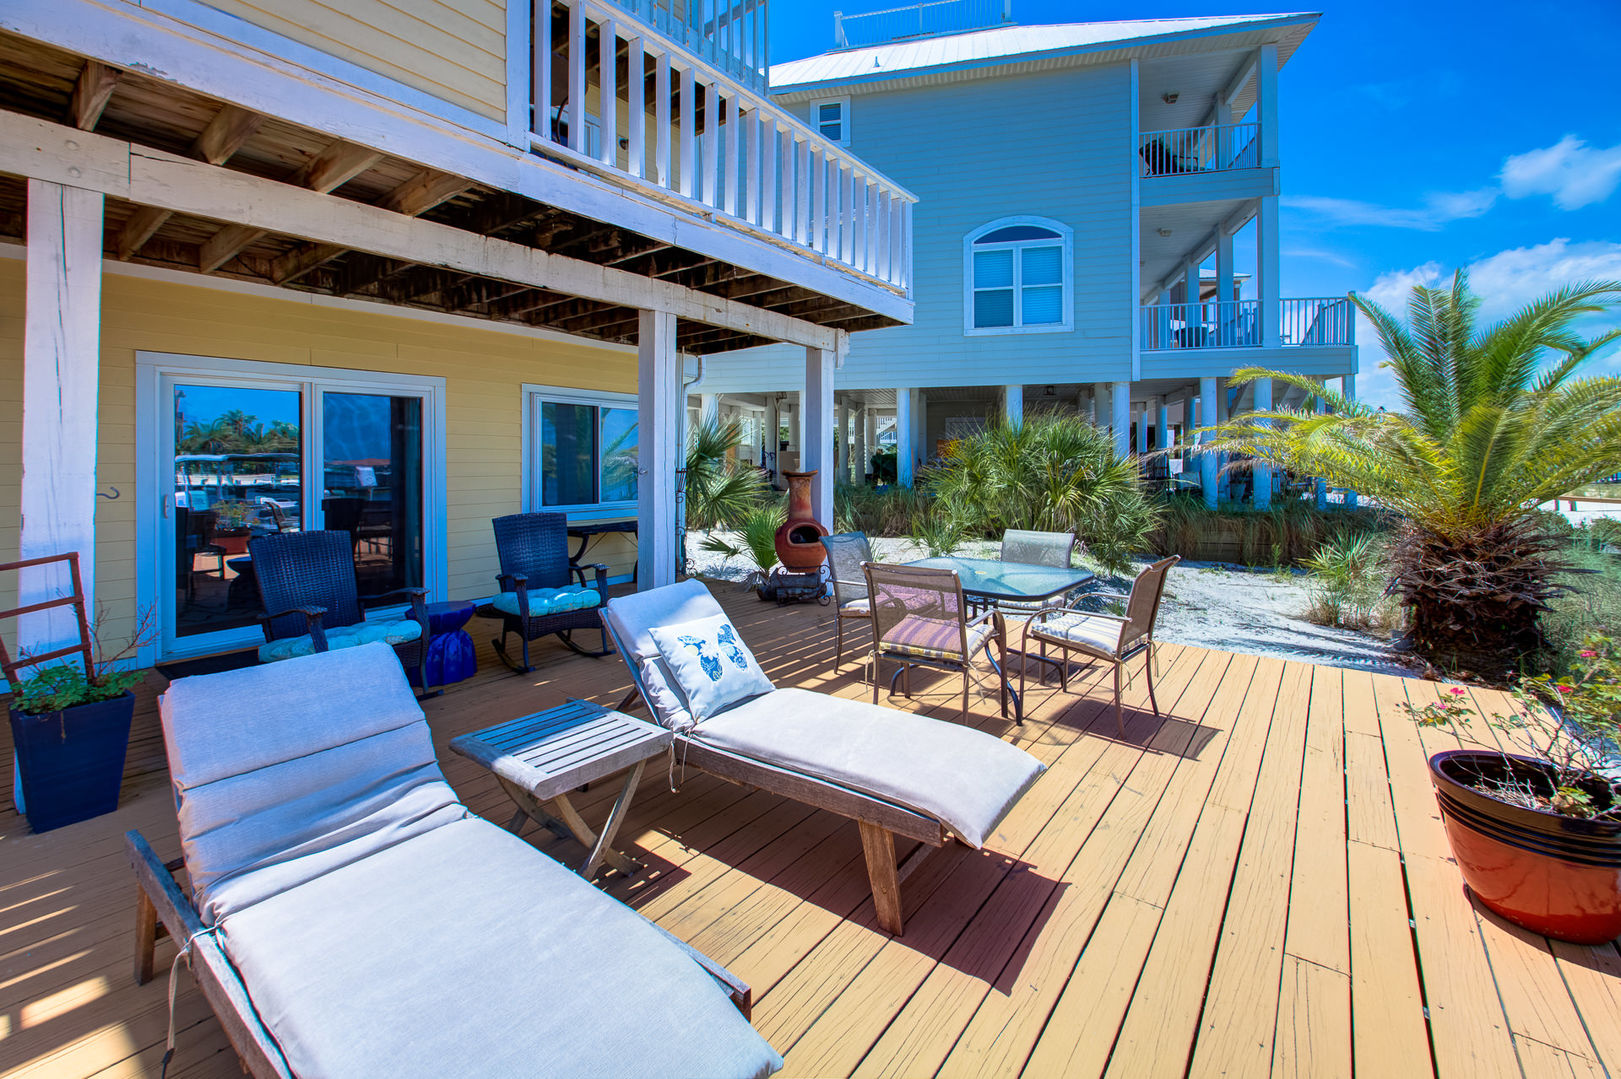 Lounge Chairs Seated on Deck of Vacation Rental in Pensacola Florida.